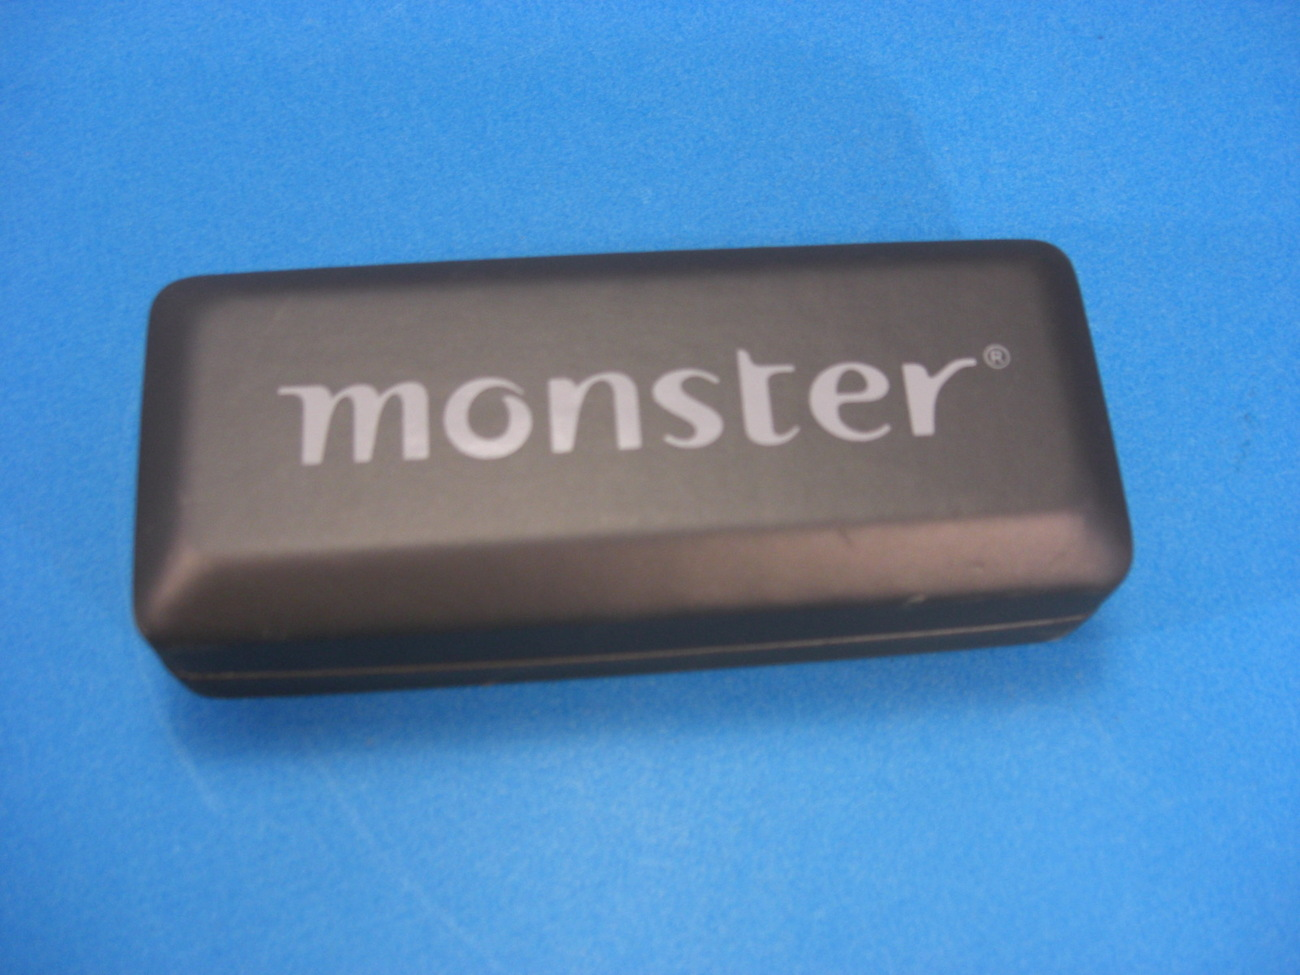 MONSTER Sunglasses Black Clam Shell Case